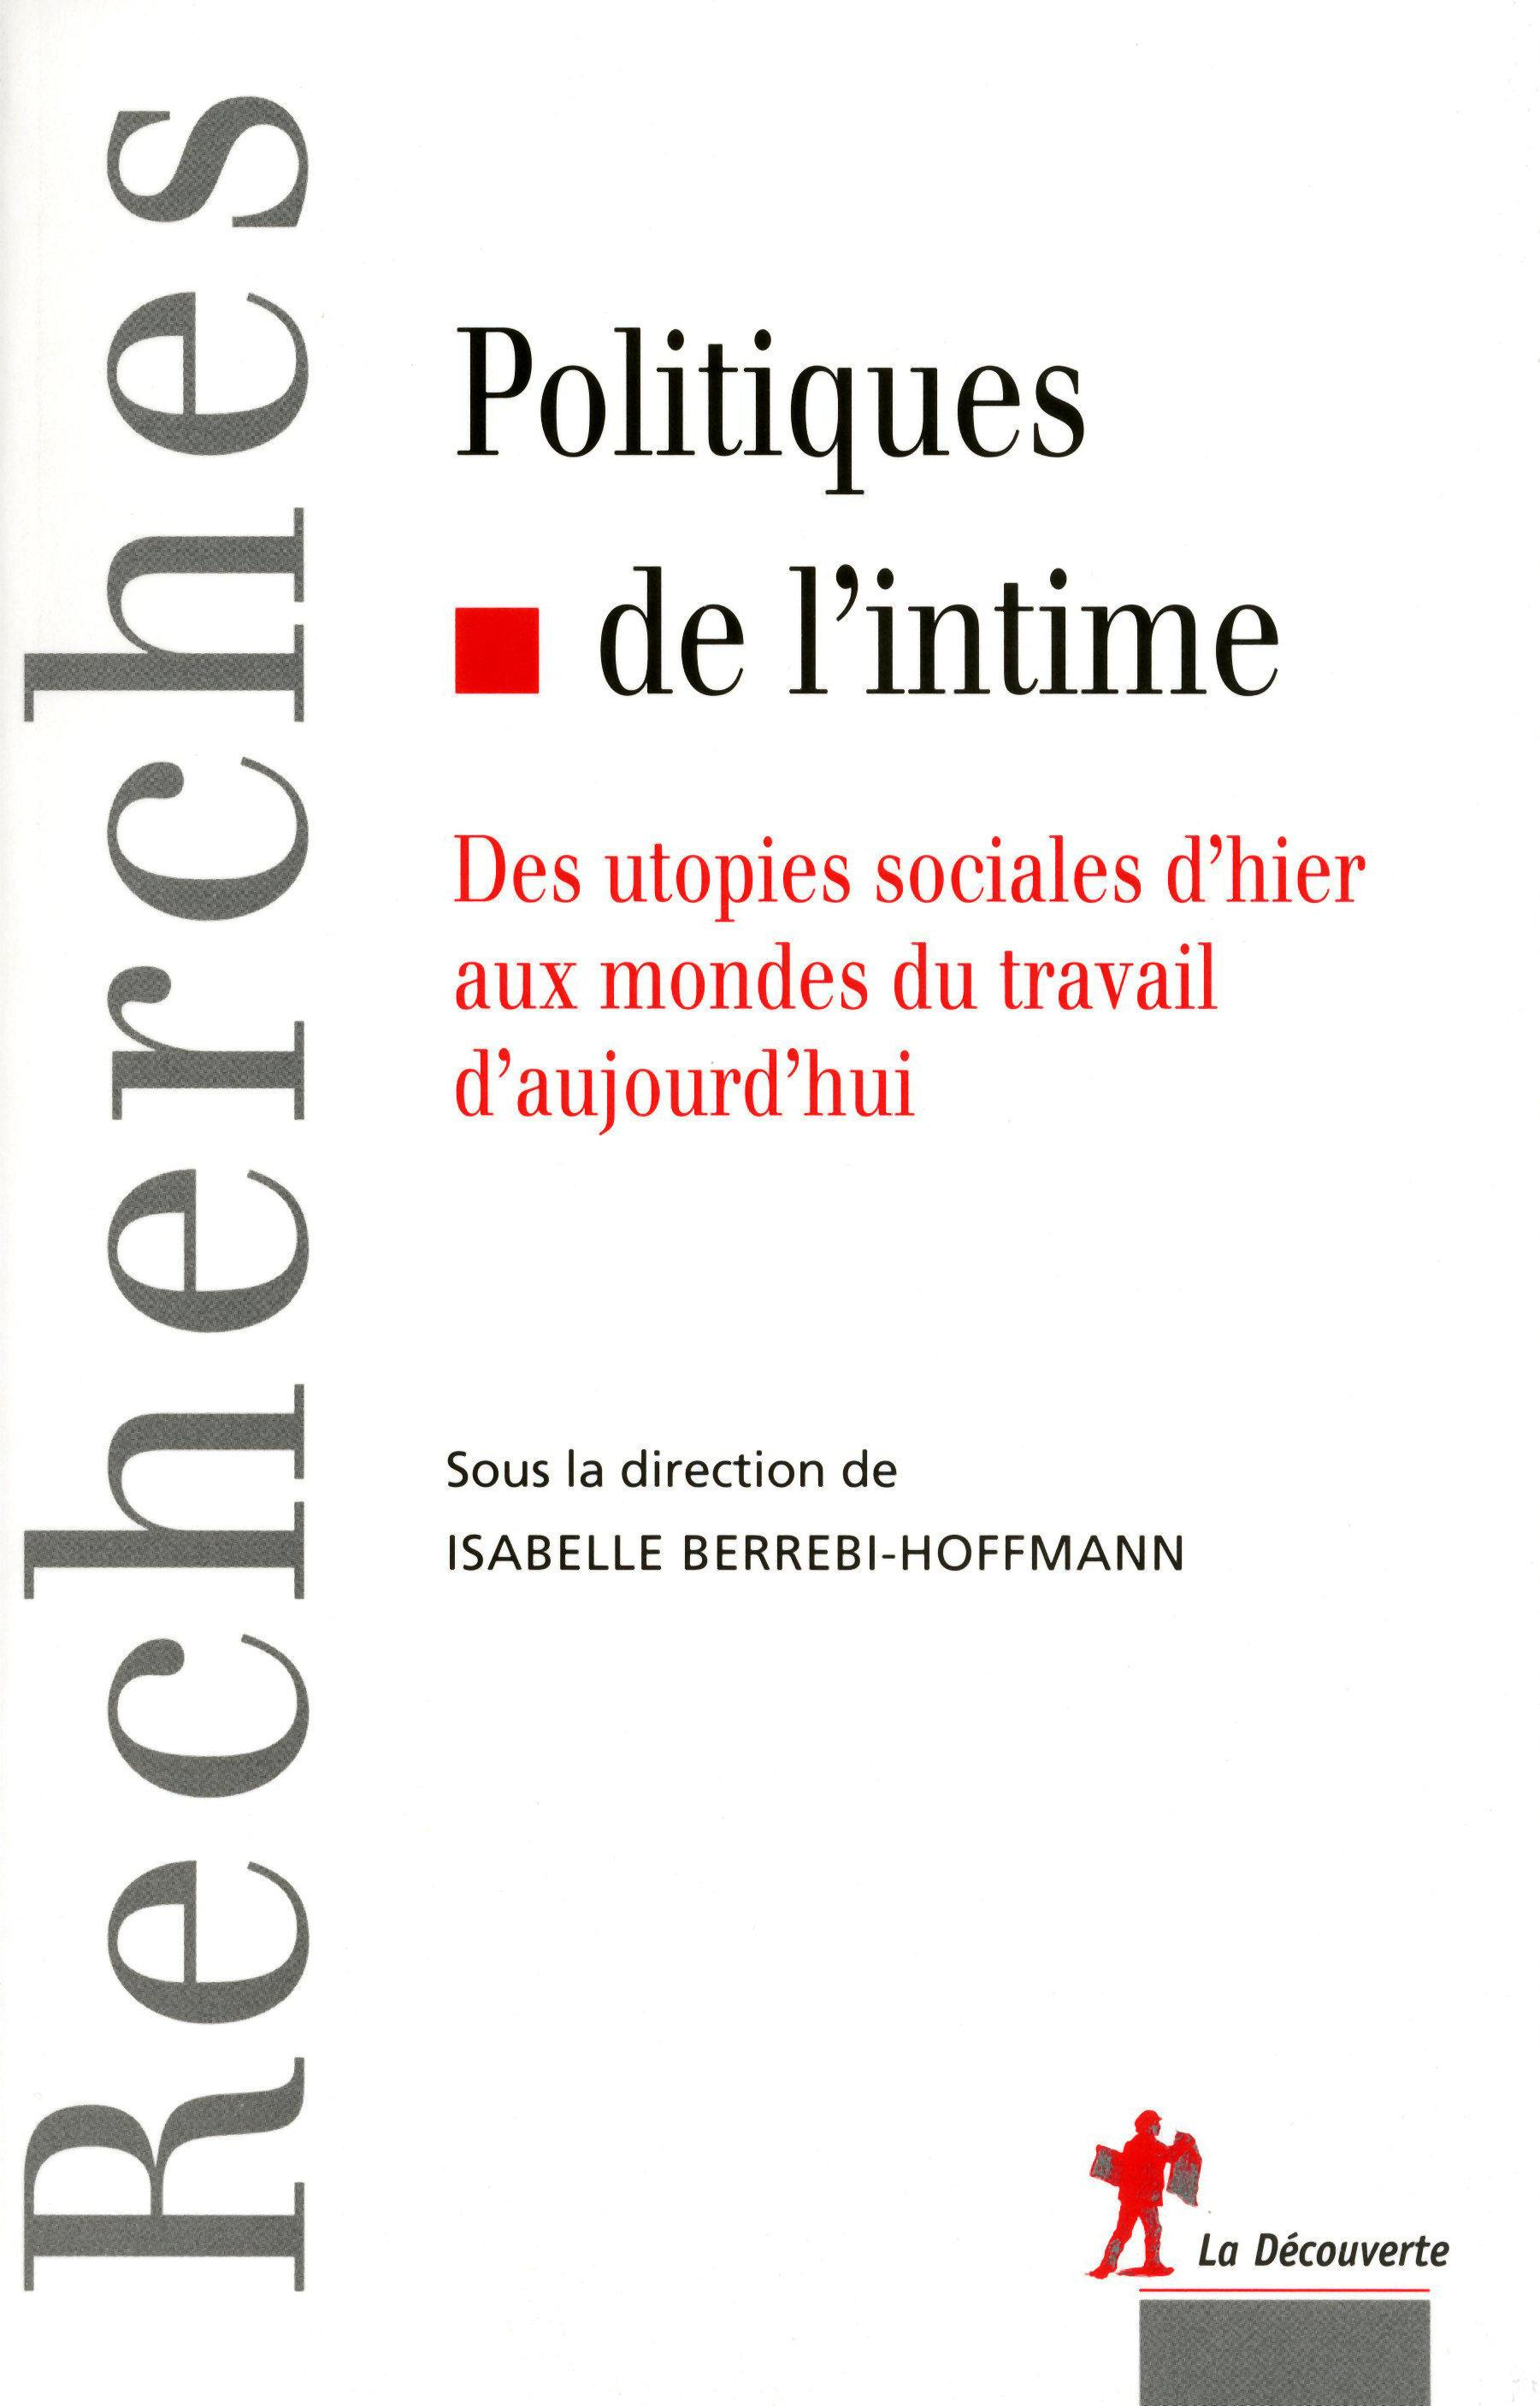 11 Travail Emotionnel Dissonance Emotionnelle Et Contrefacon De L Intimite Vingt Cinq Ans Apres La Publication De Managed Heart D Arlie R Hochschild Cairn Info